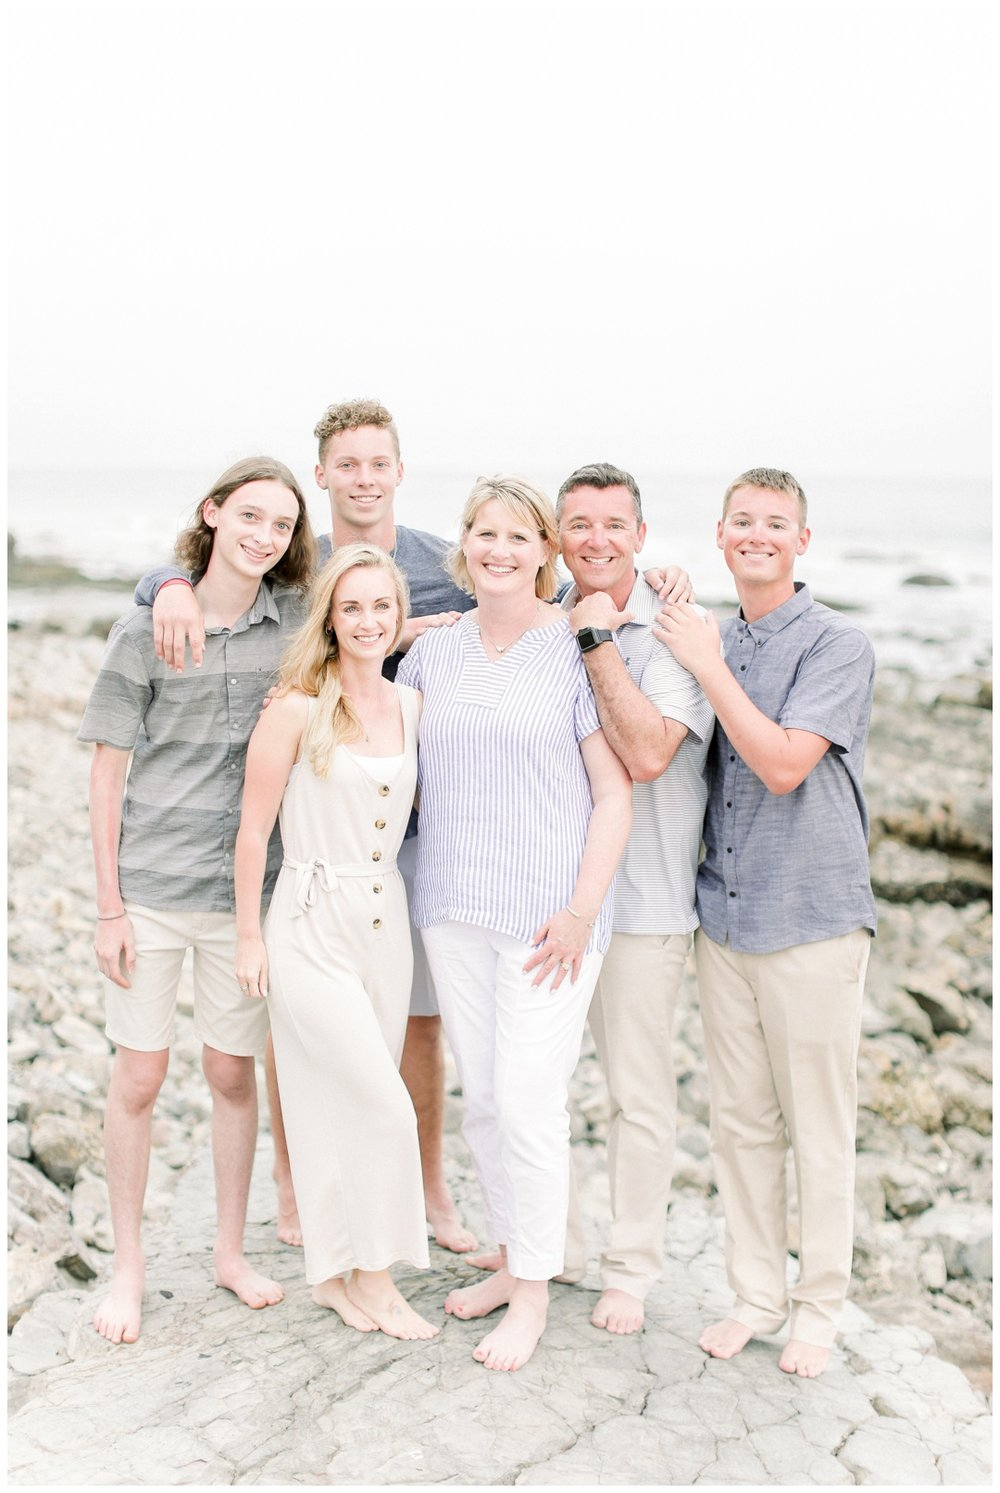 Newport_Beach_Family_Photographer_Orange_County_Family_Photography_Cori_Kleckner_Photography_Orange_County_Family_Photographer_Beach_Family_Session__1227.jpg